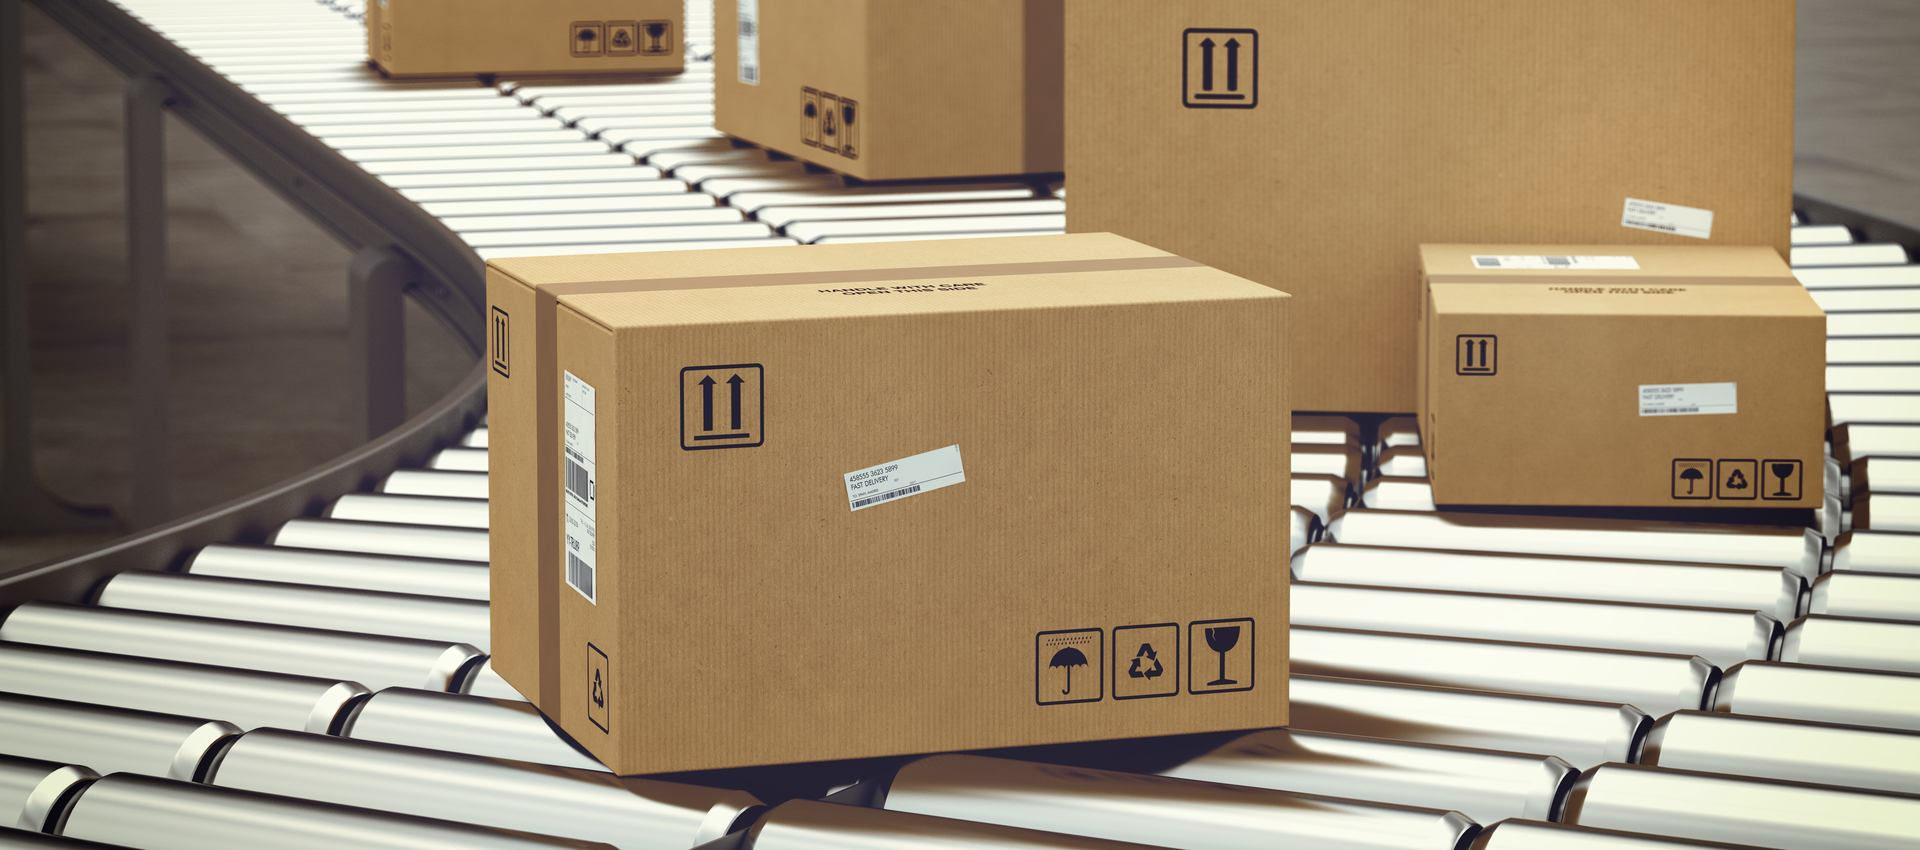 Warehouse Conveyor Systems: Choosing the Right One for Your Facility